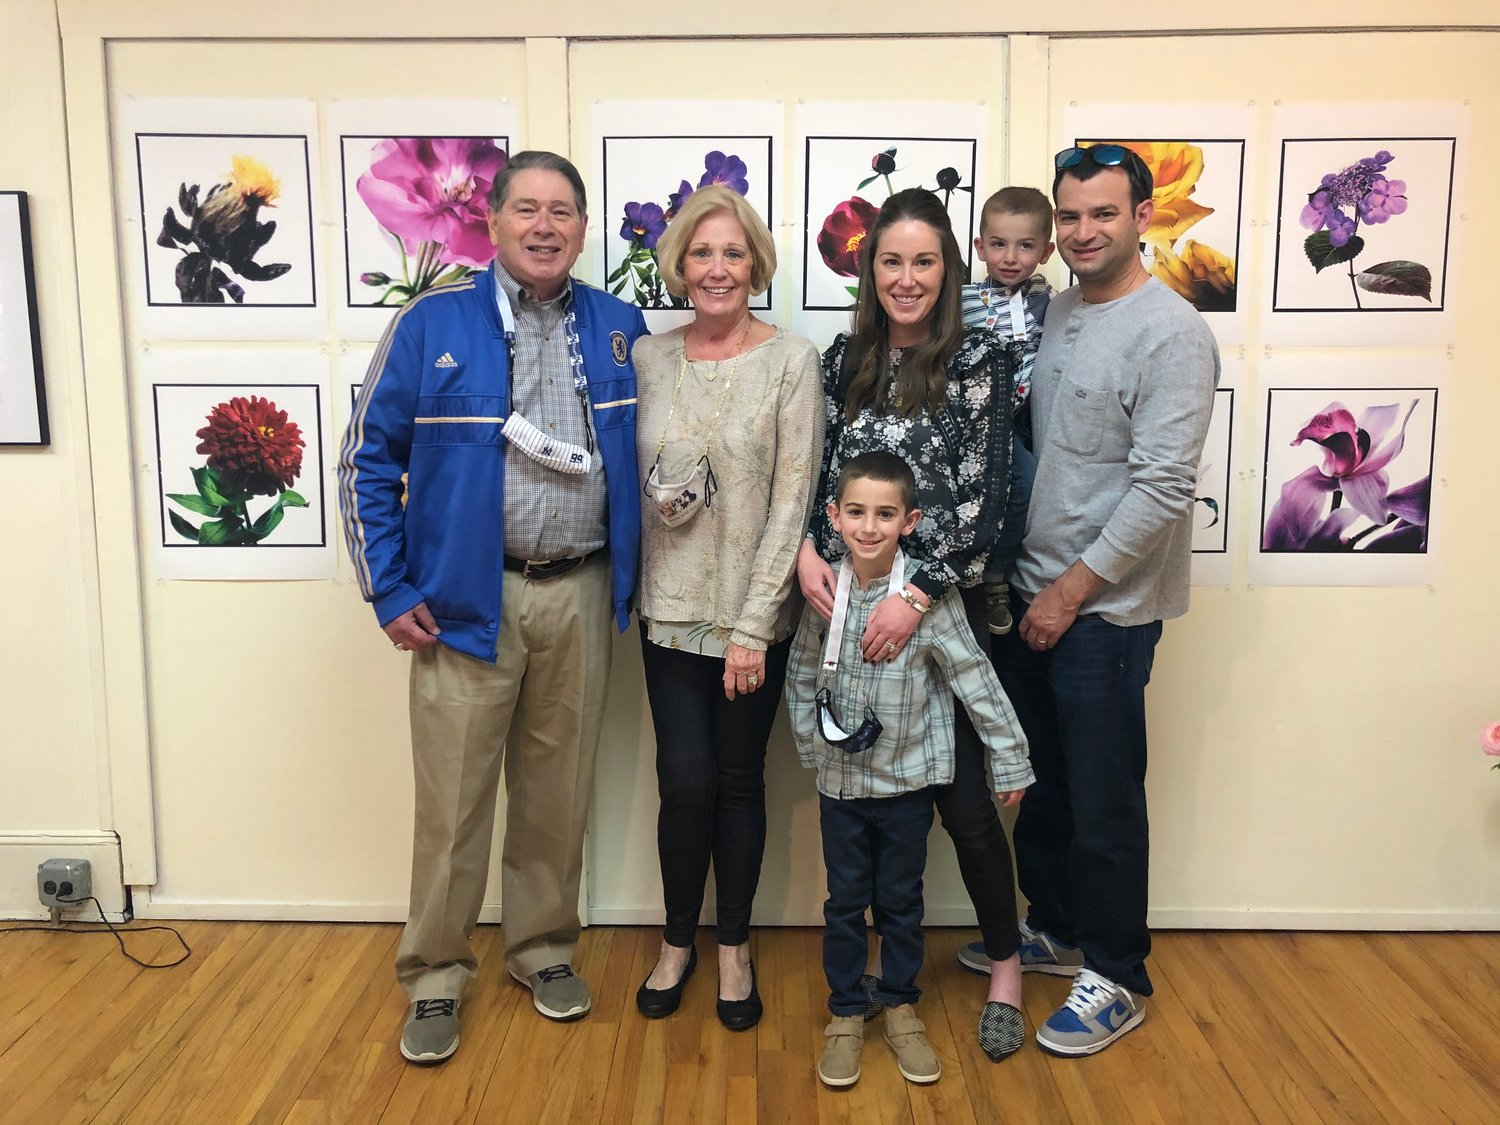 The extended Glueckstein family — from left, Fred and Eileen Glueckstein, and Deb, Drew, Jason and Max Wachtler — went to see the Eric Kamp exhibit at the Sea Cliff Village Museum. Fred Glueckstein is the late Eric Kamp's brother-in-law.